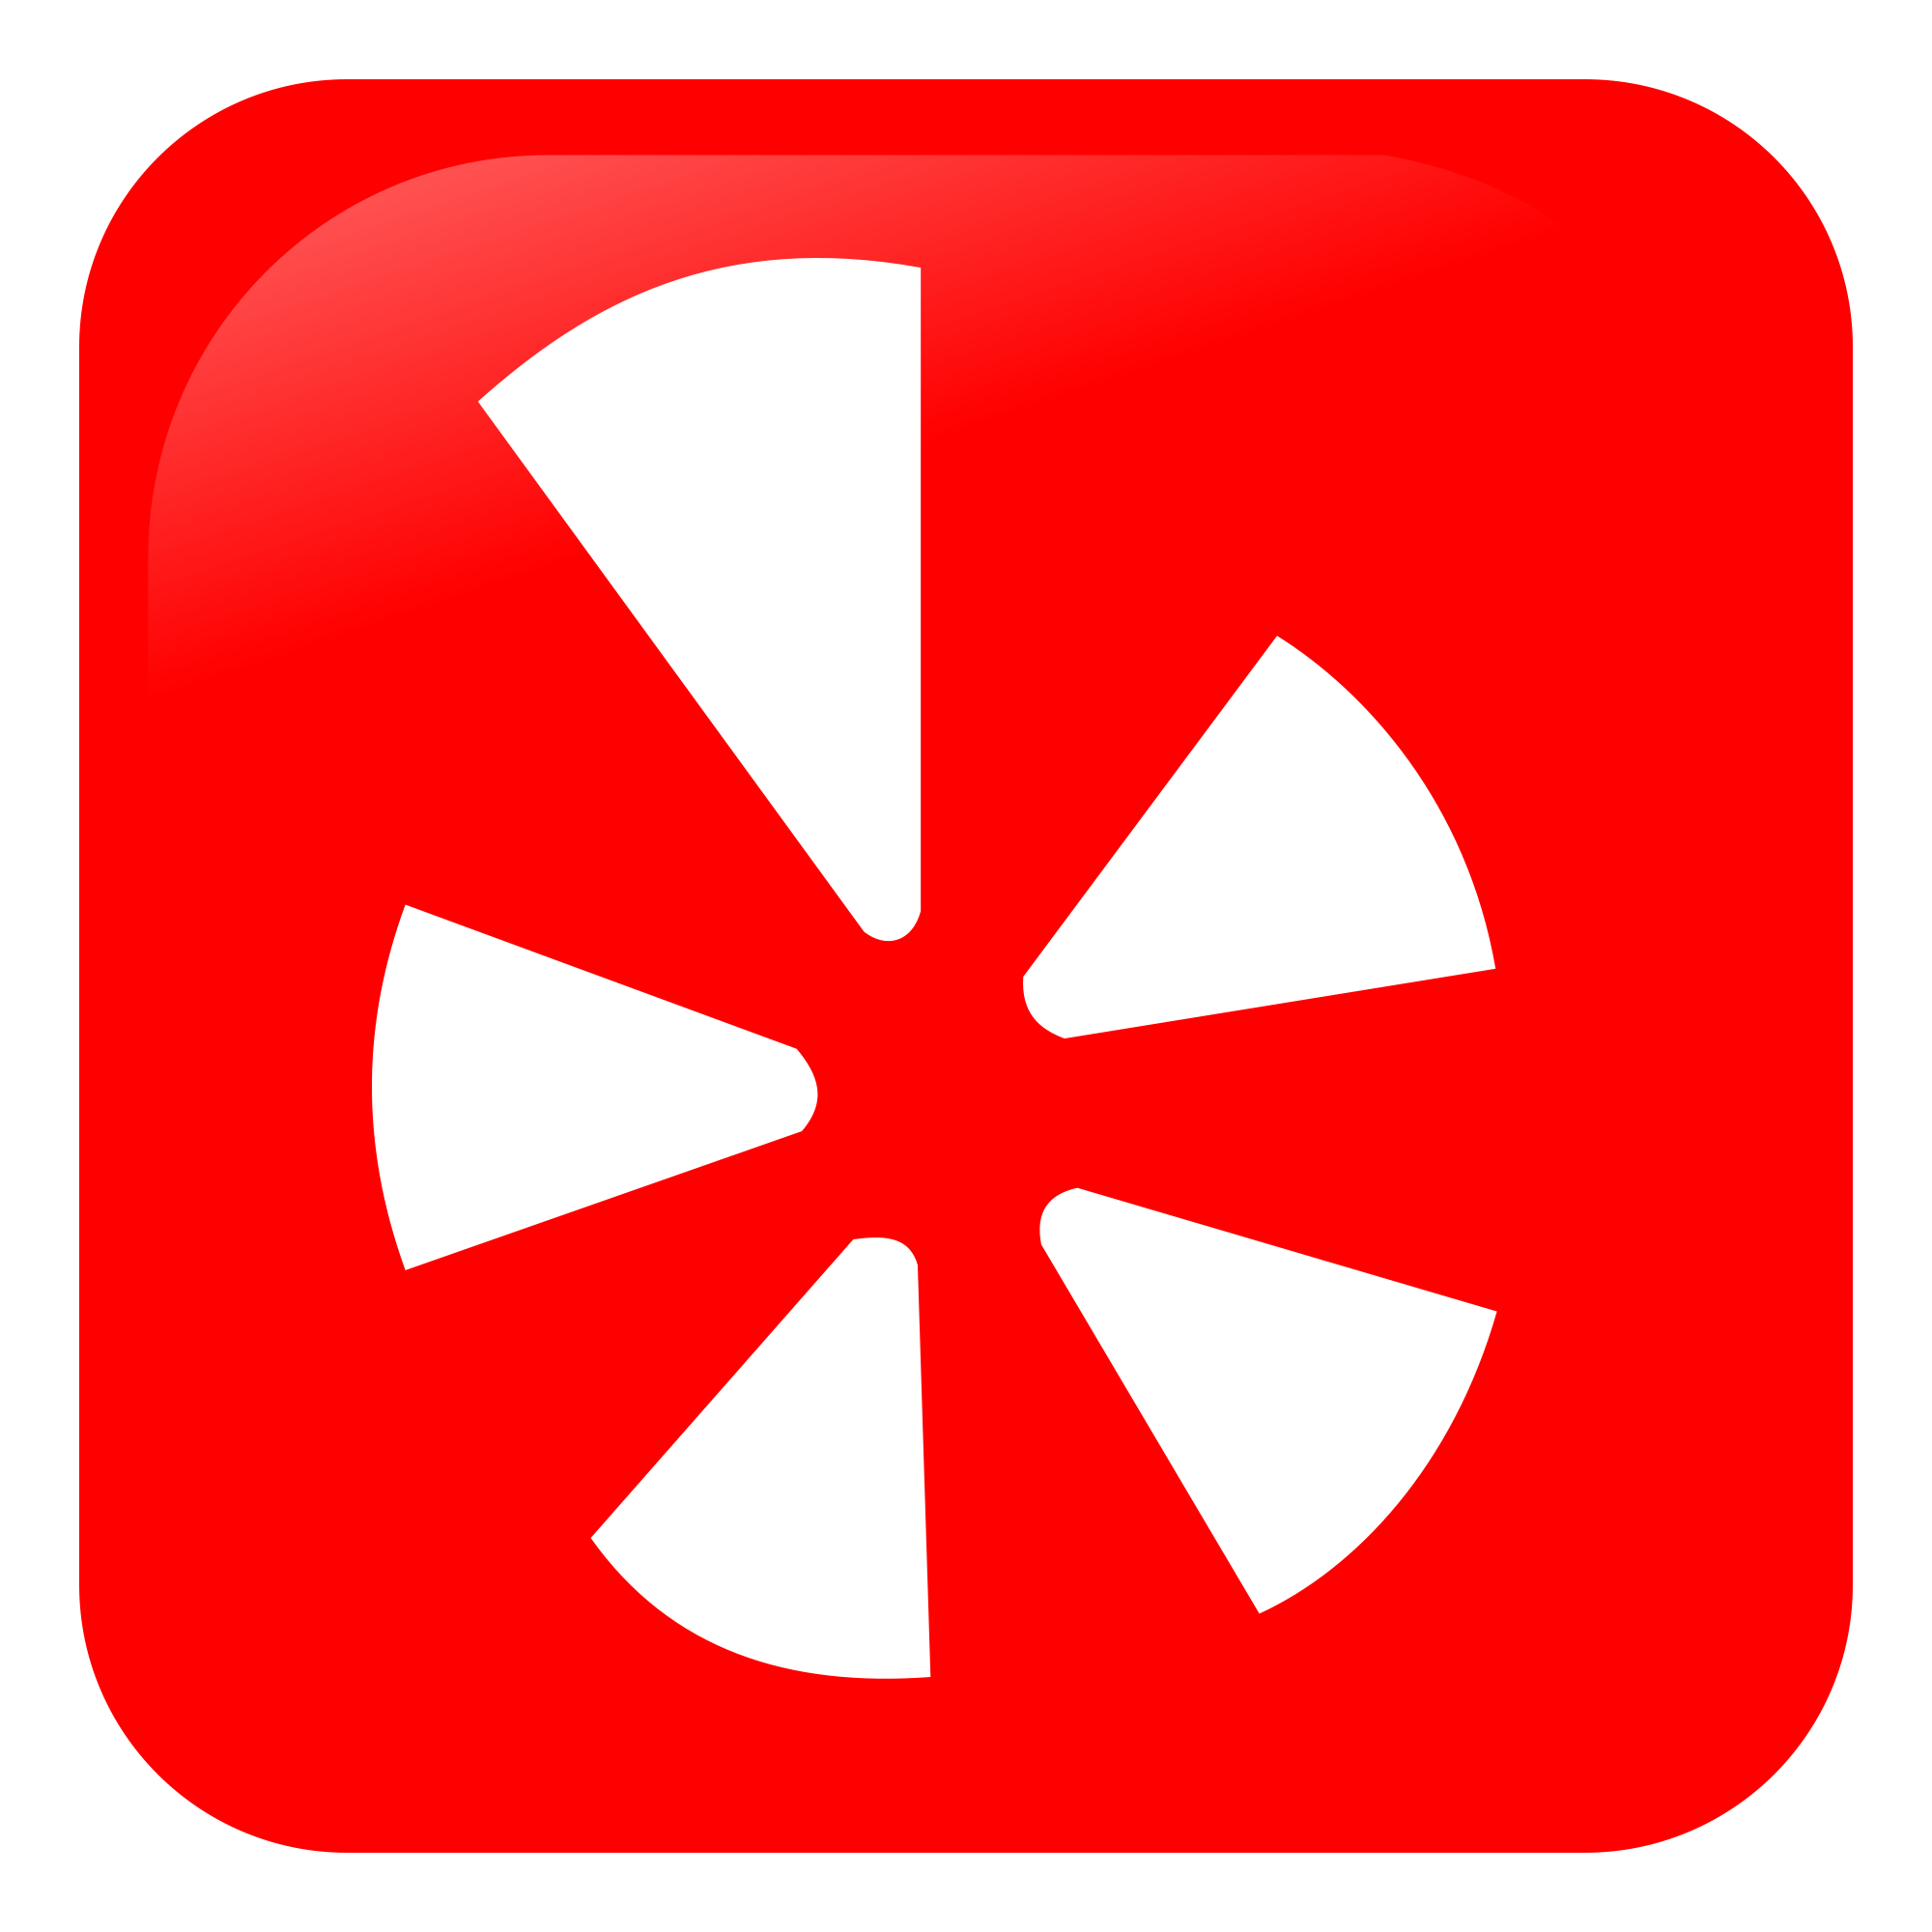 Yelp icon png. File svg wikimedia commons